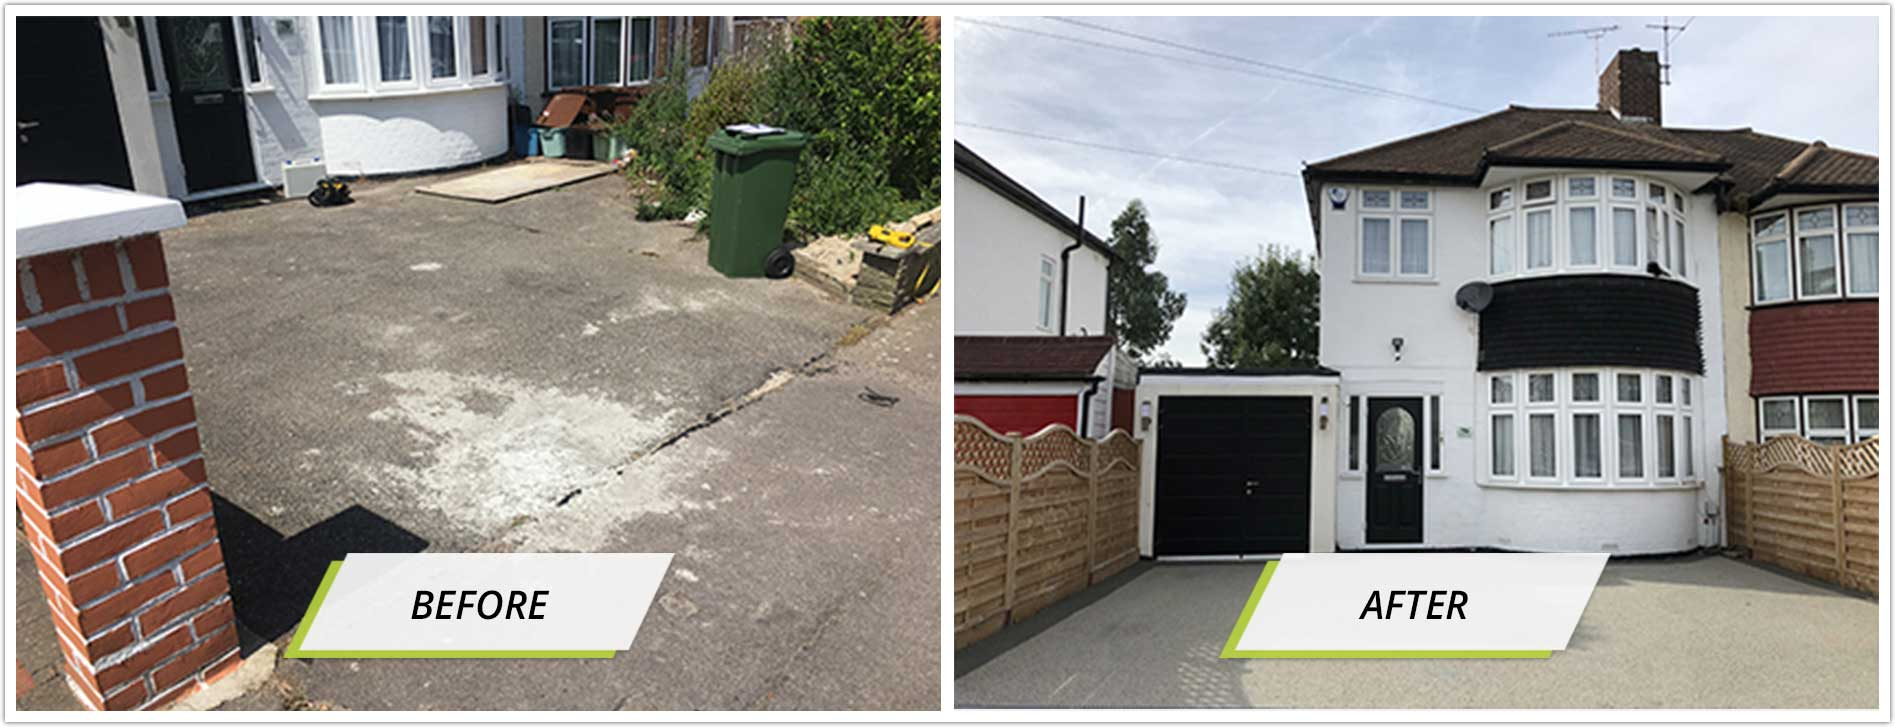 Resin-Bound-Driveways-before-after-1